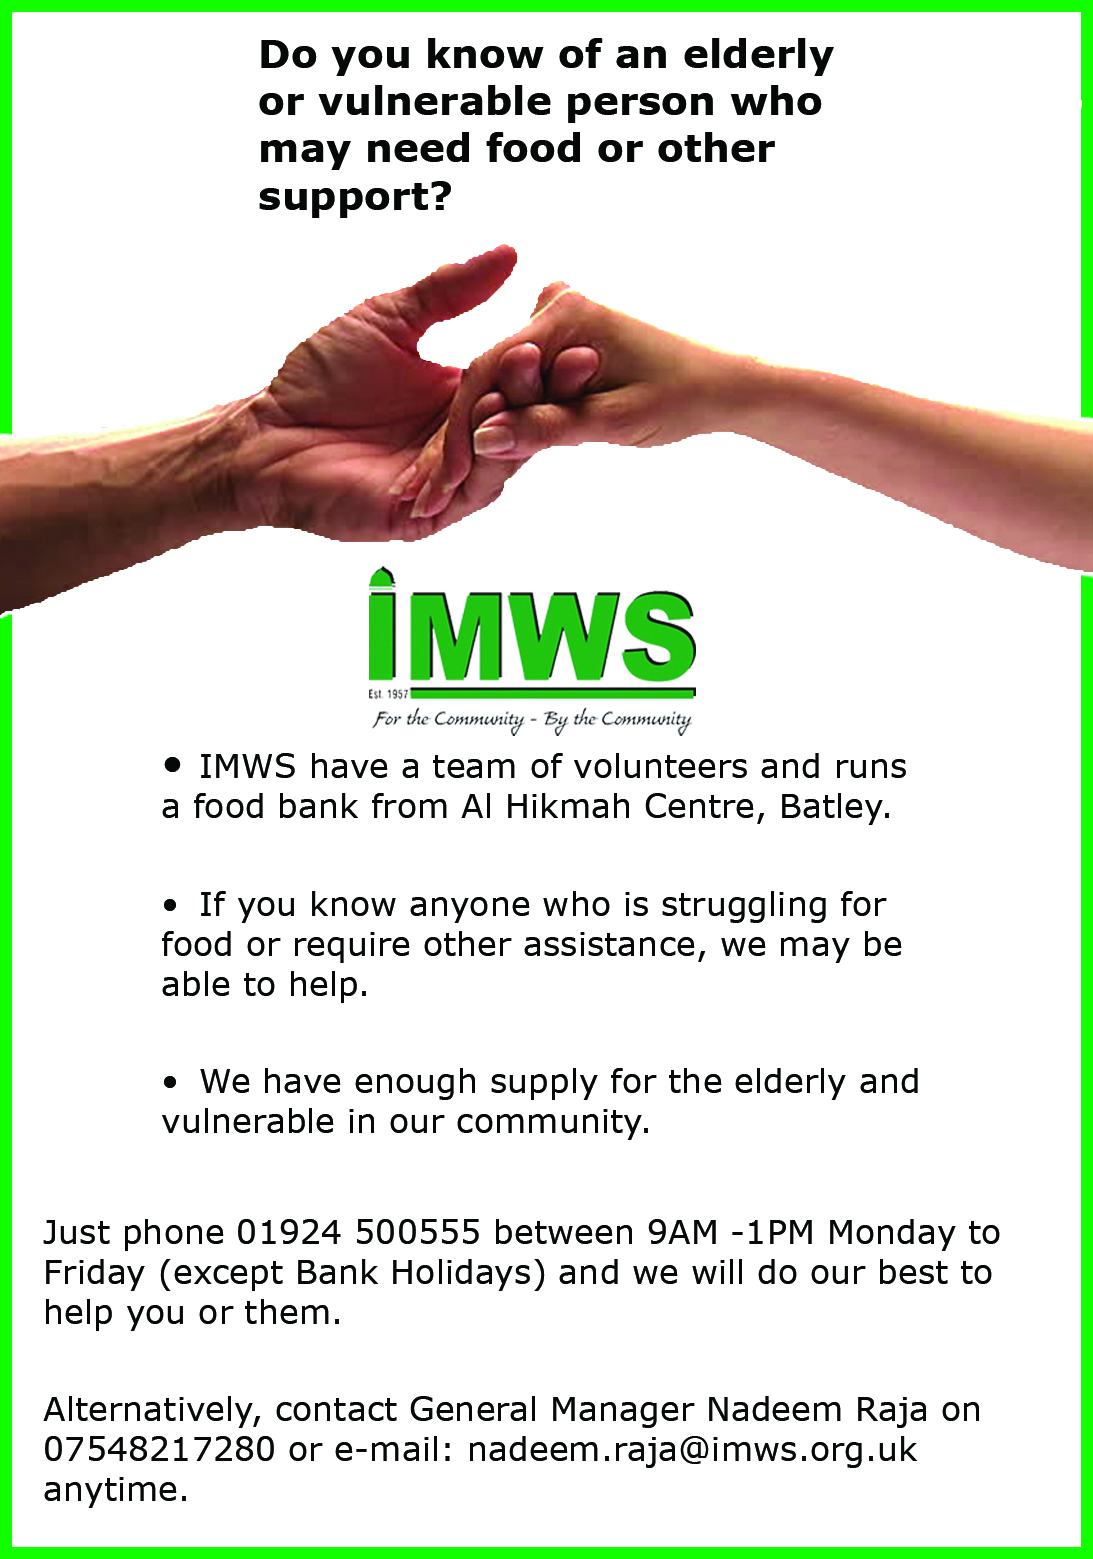 Do you know of an elderly or vulnerable person who may need food or other support?